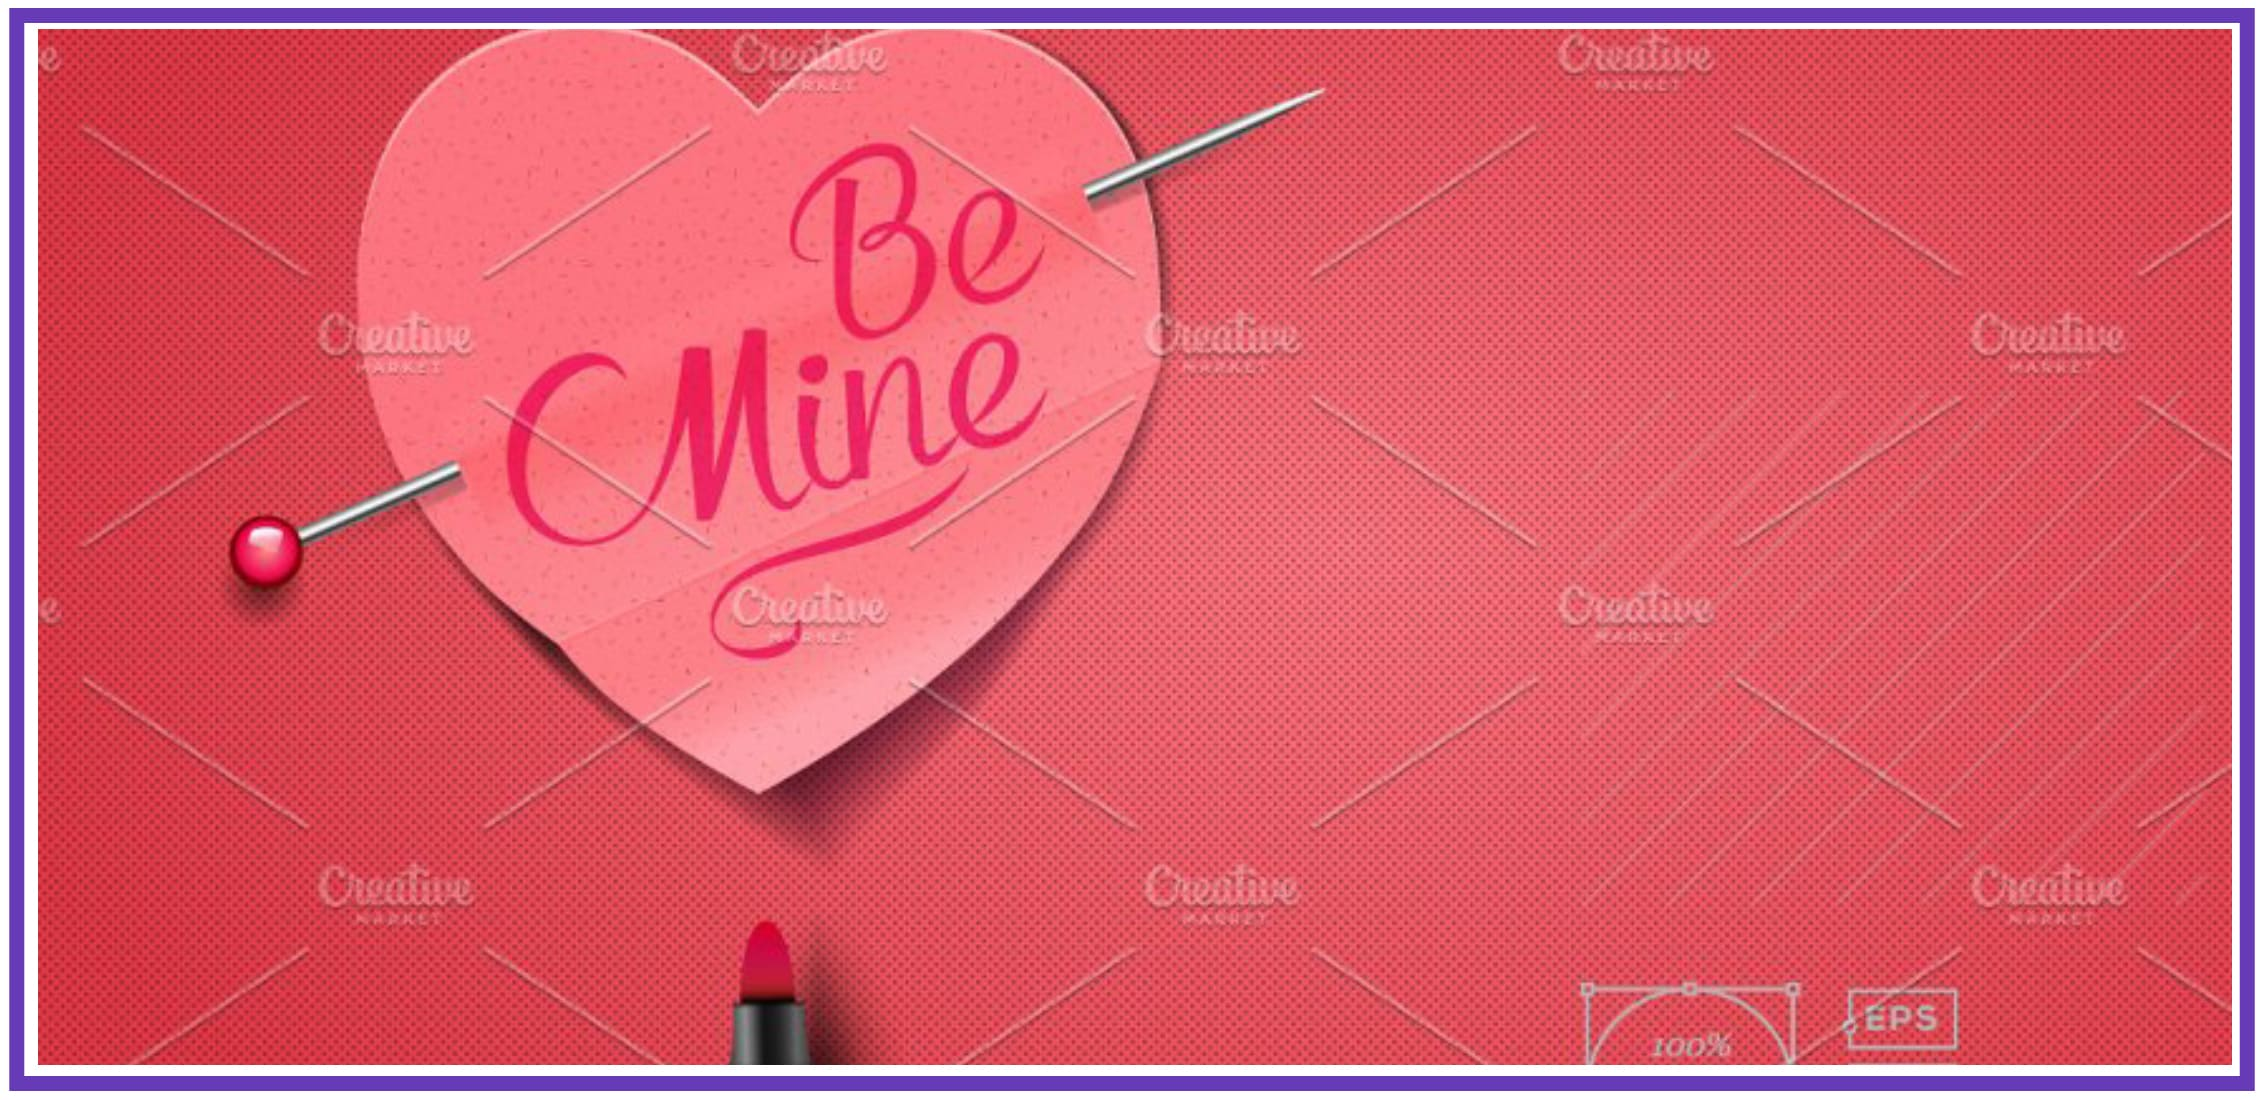 70+ Valentine's Day Cards 2021. Do not Forget about a Heartfelt Card for Your Valentine - valentines day card 28